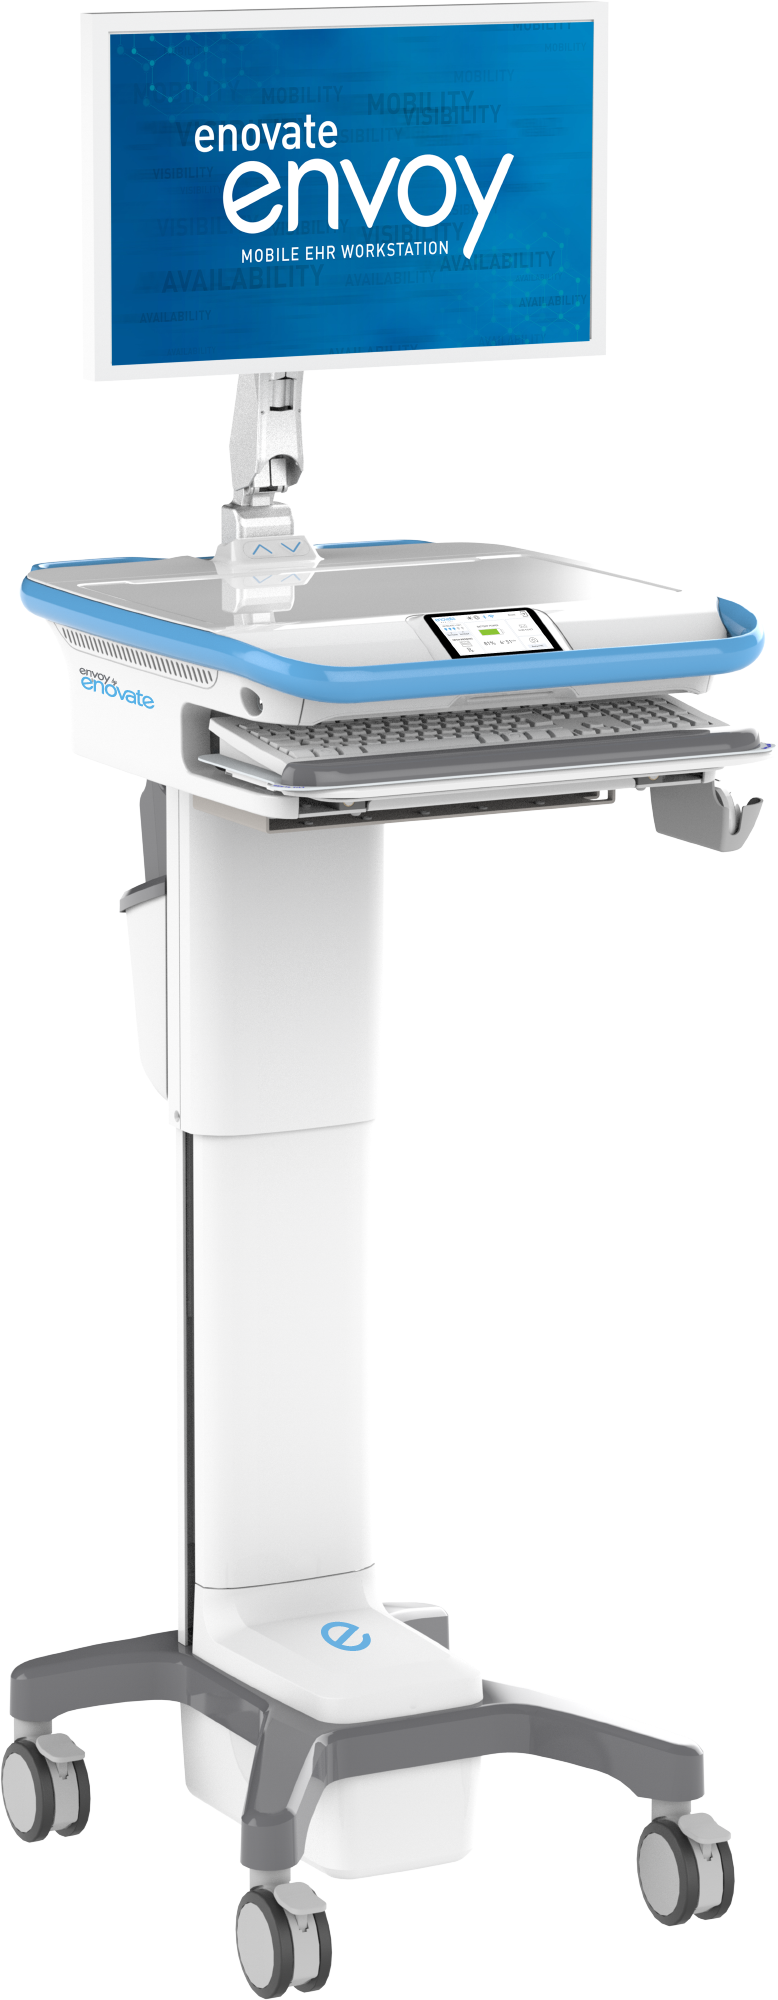 Enovate Medical Envoy with MobiusPower